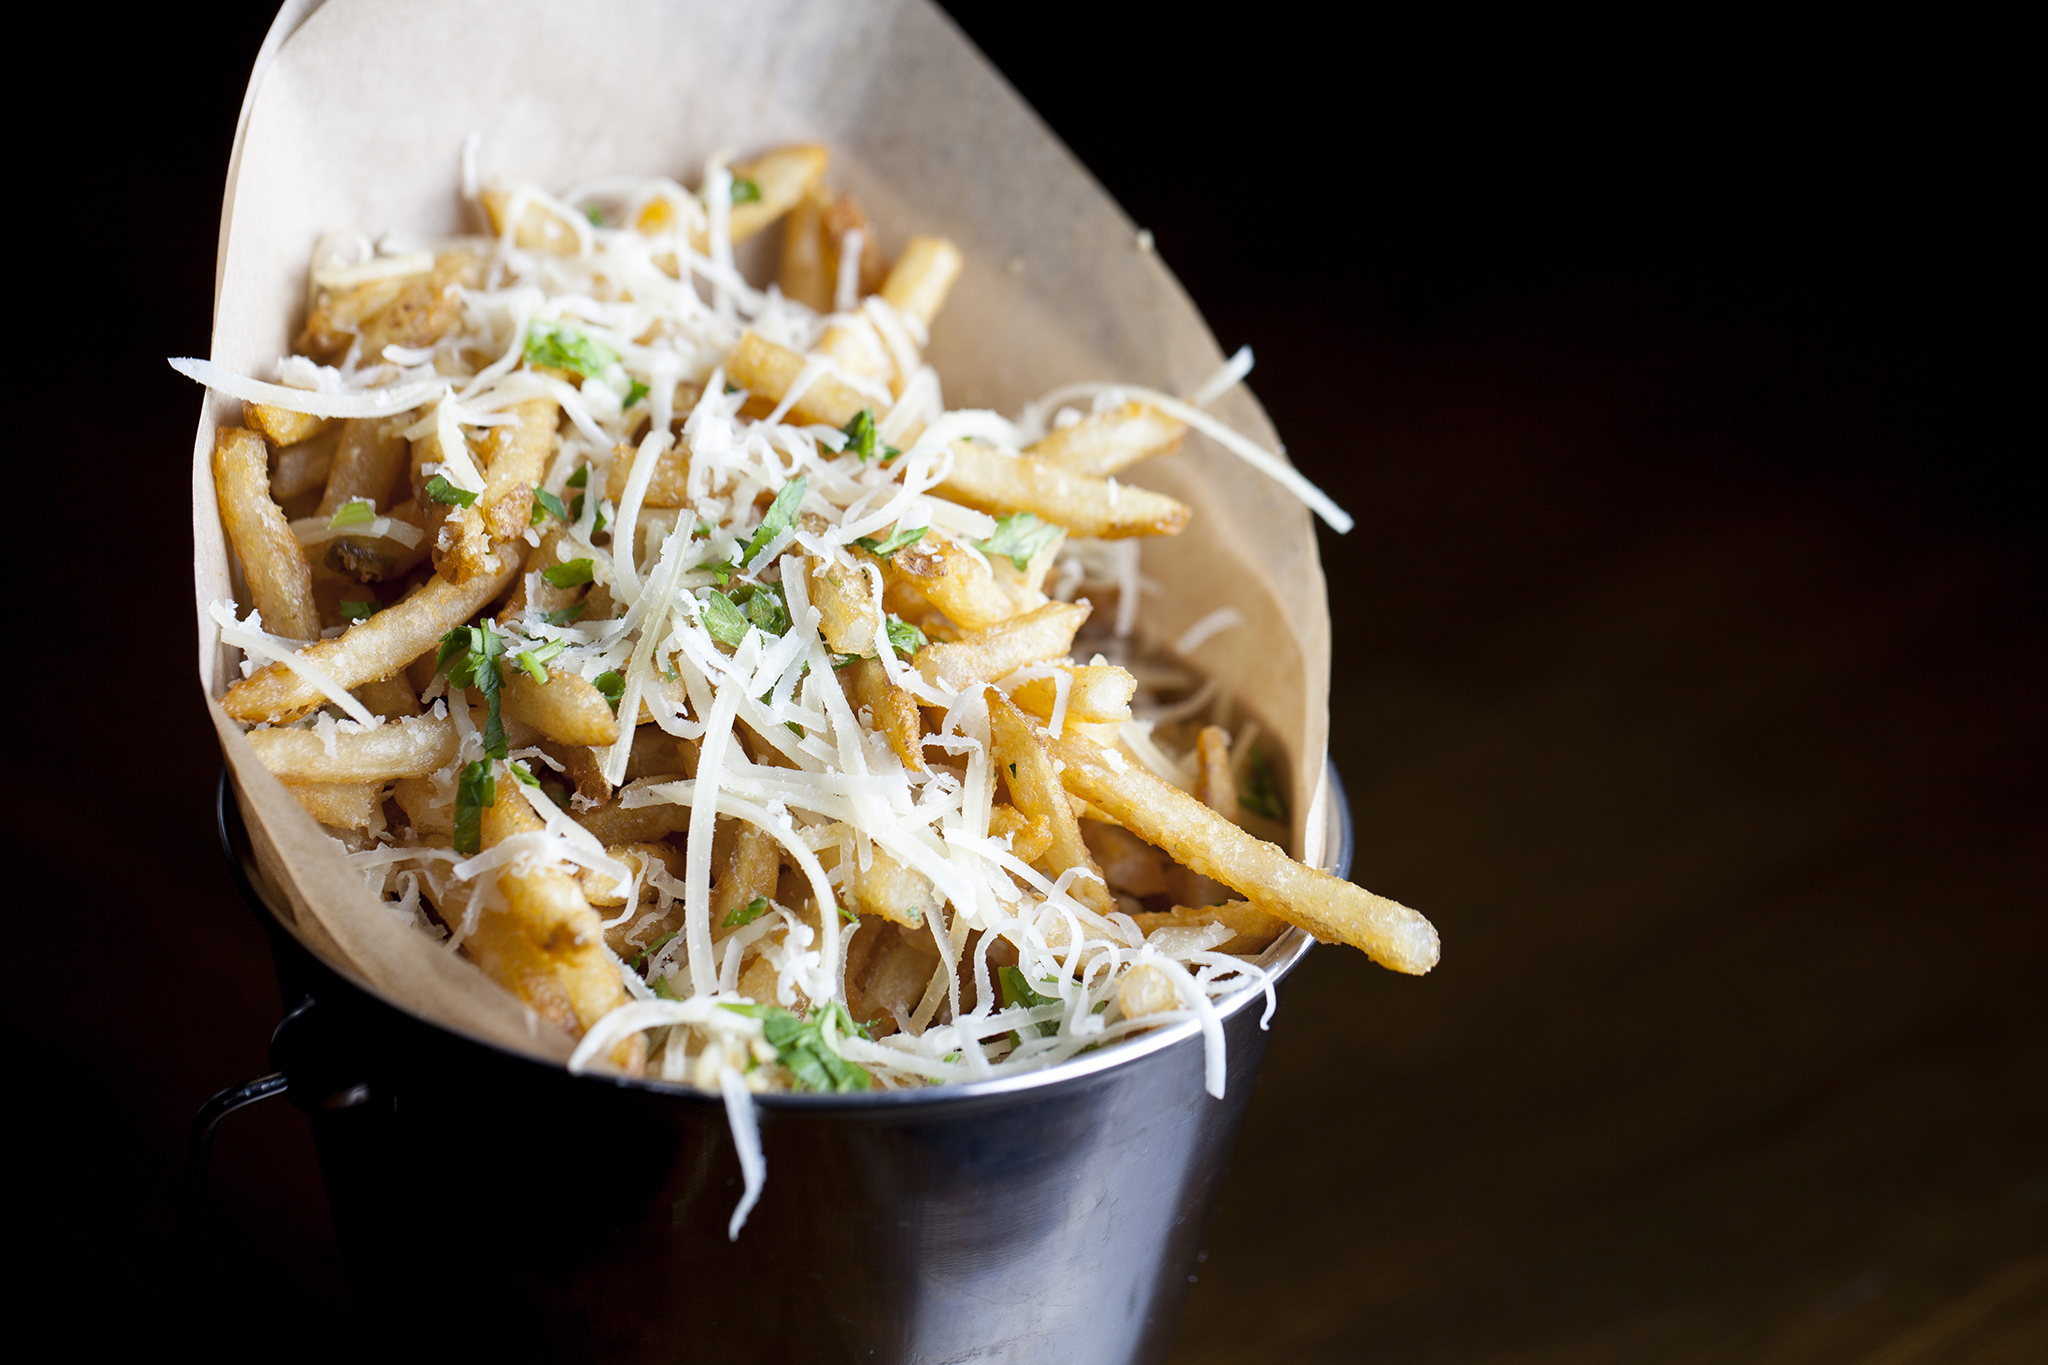 Garlic Fries at Lost Property